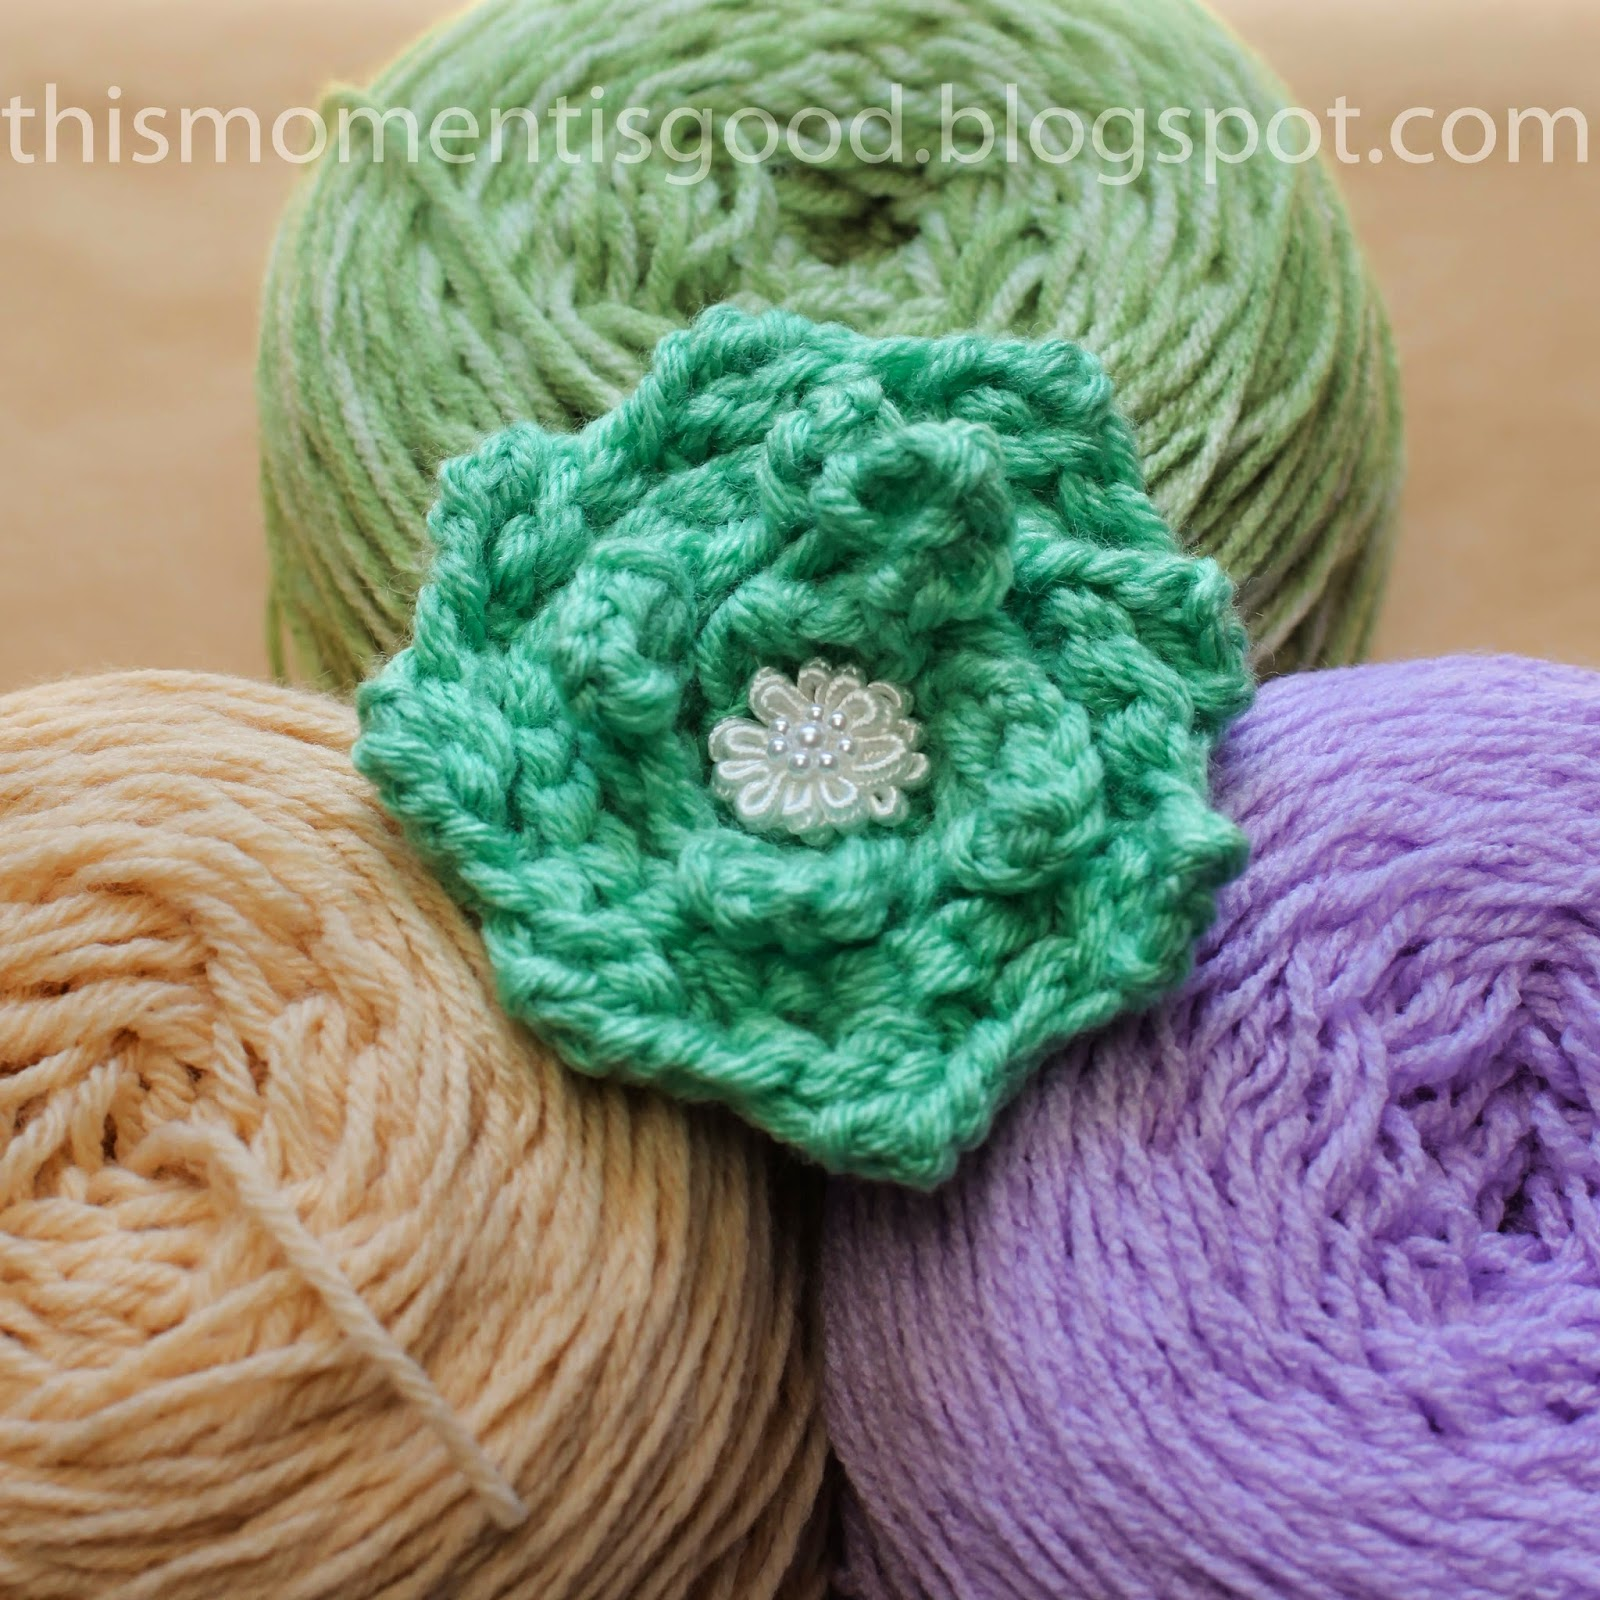 Knitting Loom Pattern : Loom Knitting by This Moment is Good!: LOOM KNIT ROSE PATTERN